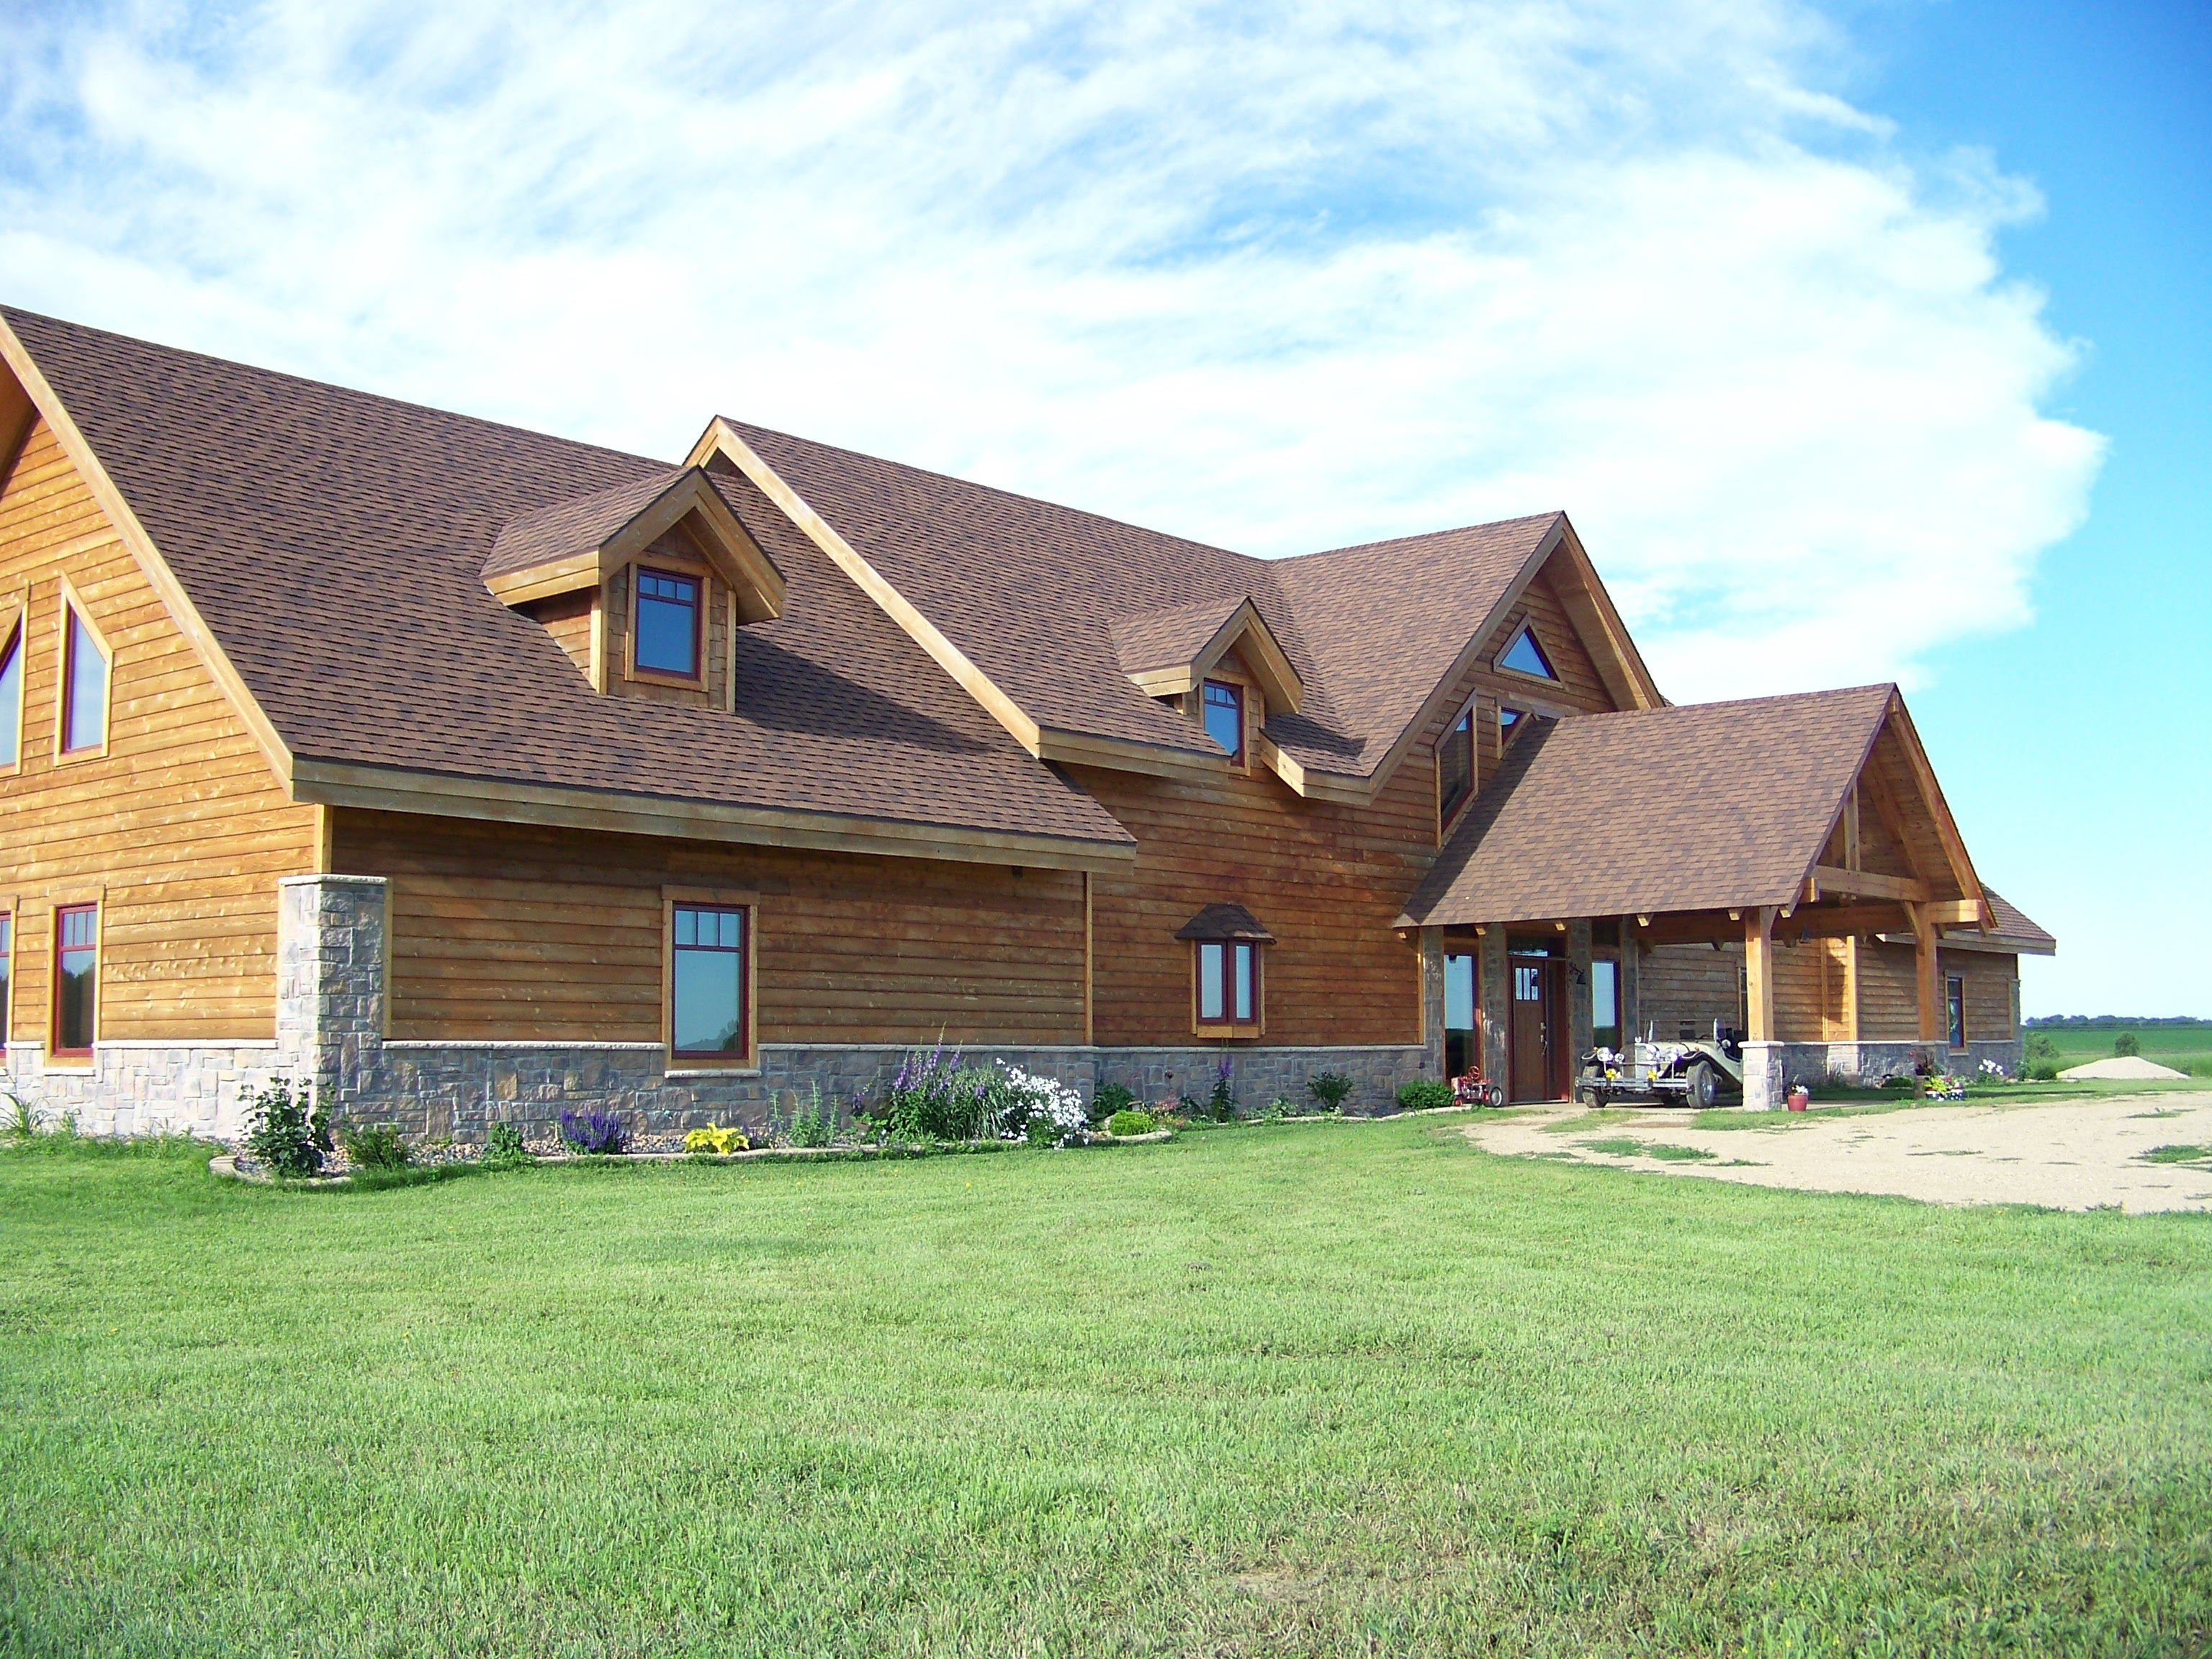 Six Great Reasons to Enclose Your Timber Frame Home in SIPs